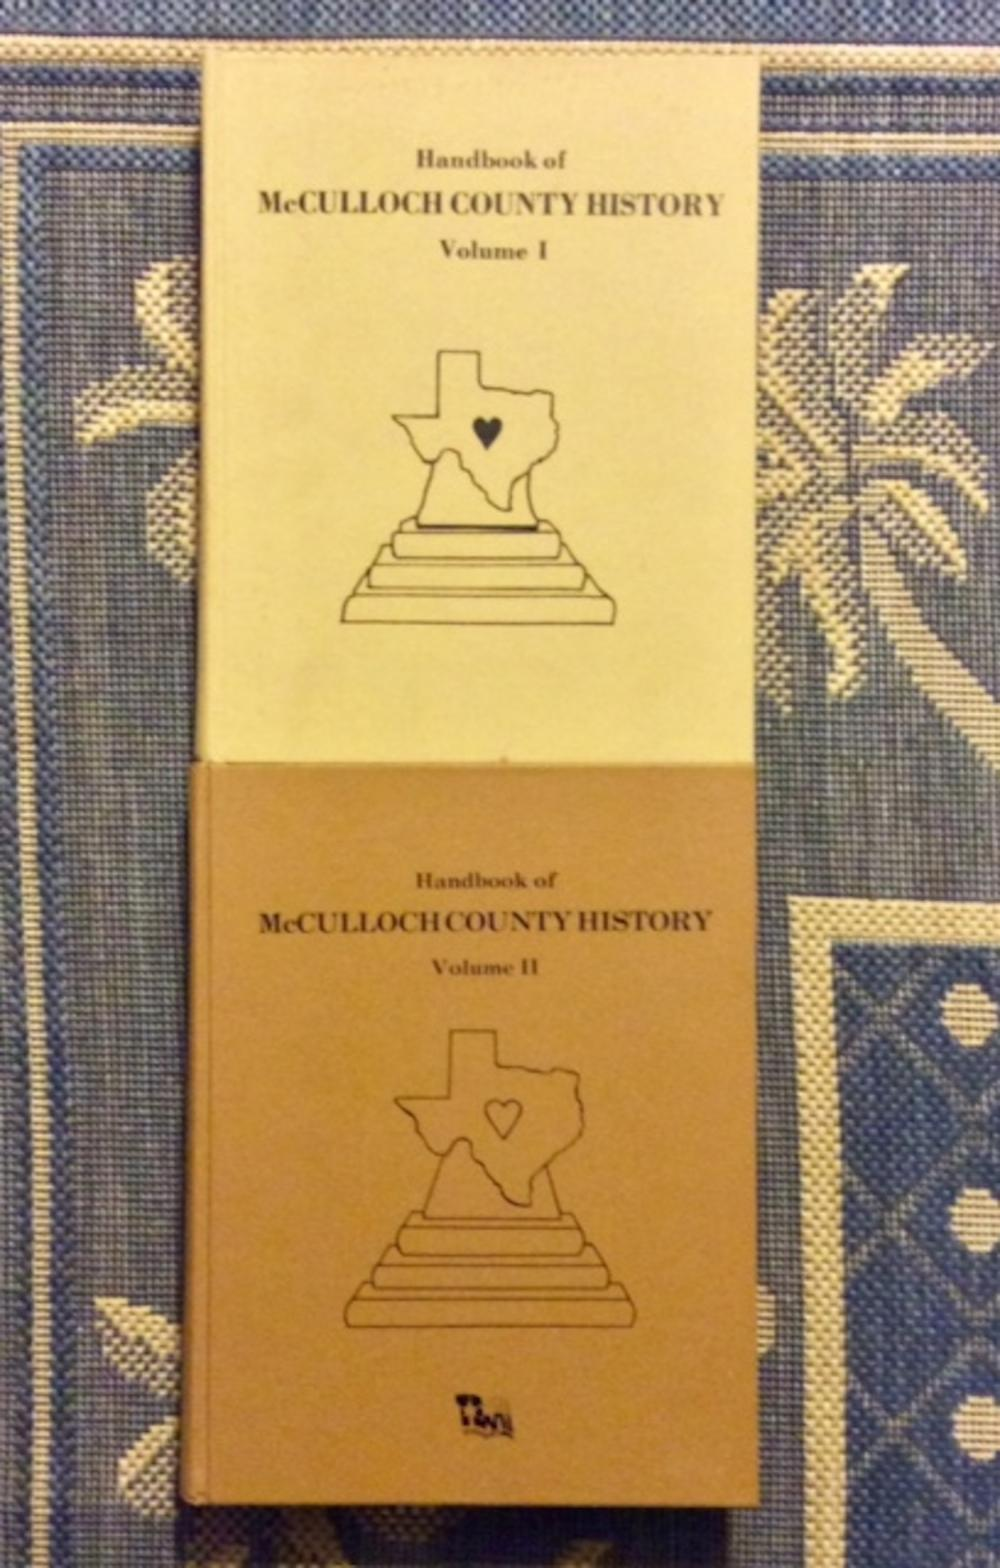 """McCullouch (Texas) County History"" compiled by Wayne Spiller SCARCE VINTAGE set Of (2) Hardcover Vols (1 signed) History Of McCulloch County Texas"